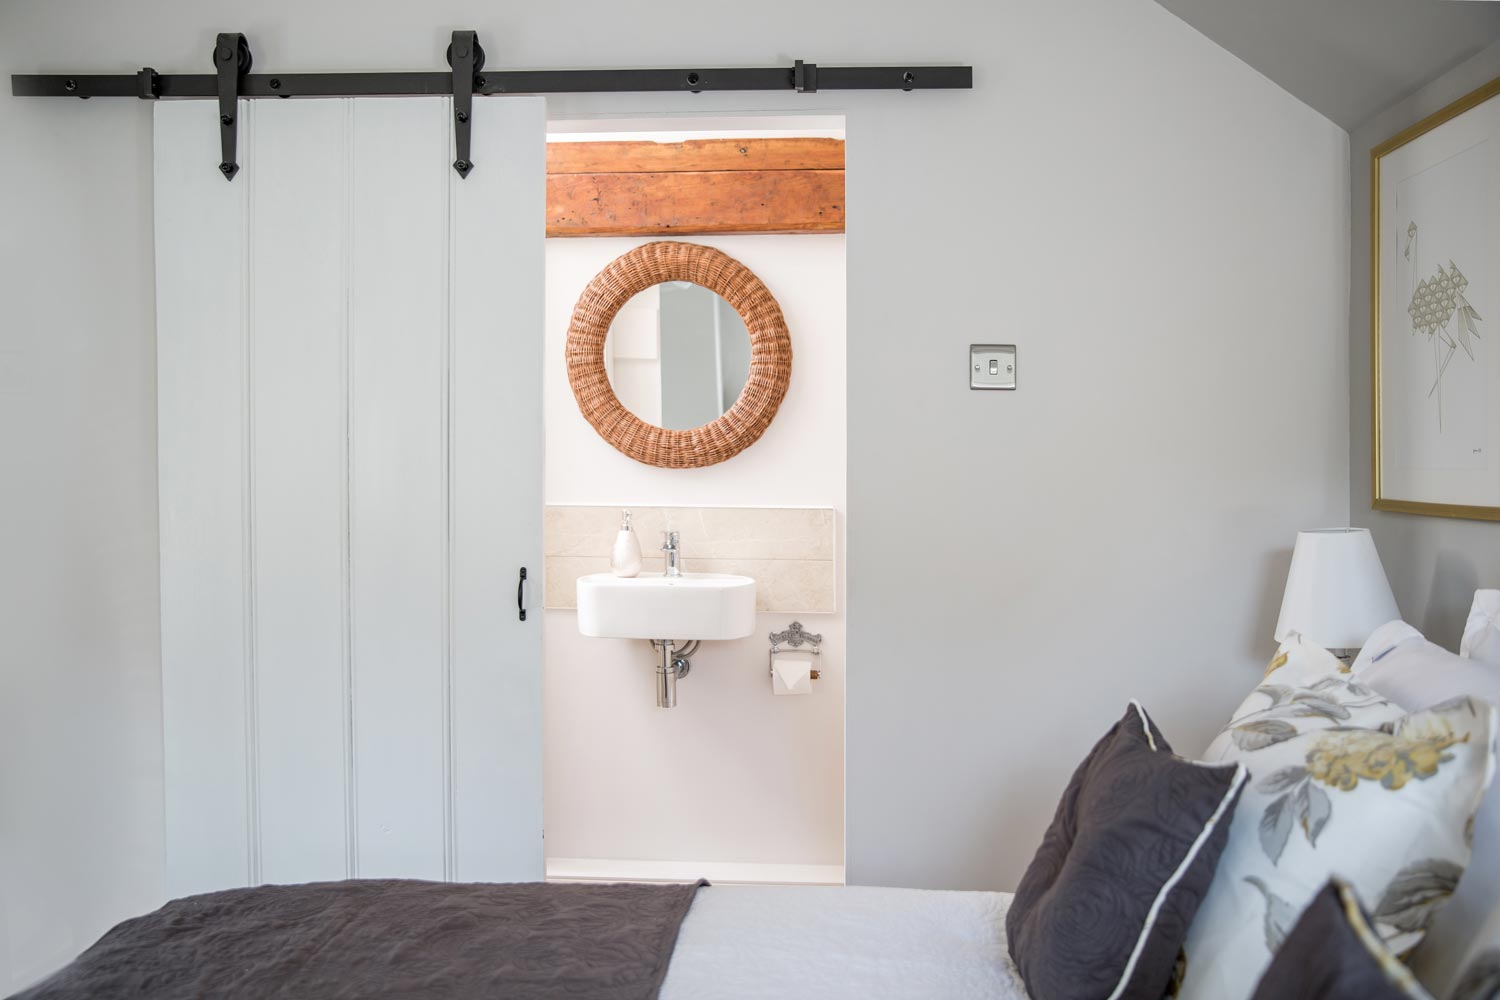 A sliding door leads you to the ensuite shower room in master bedroom